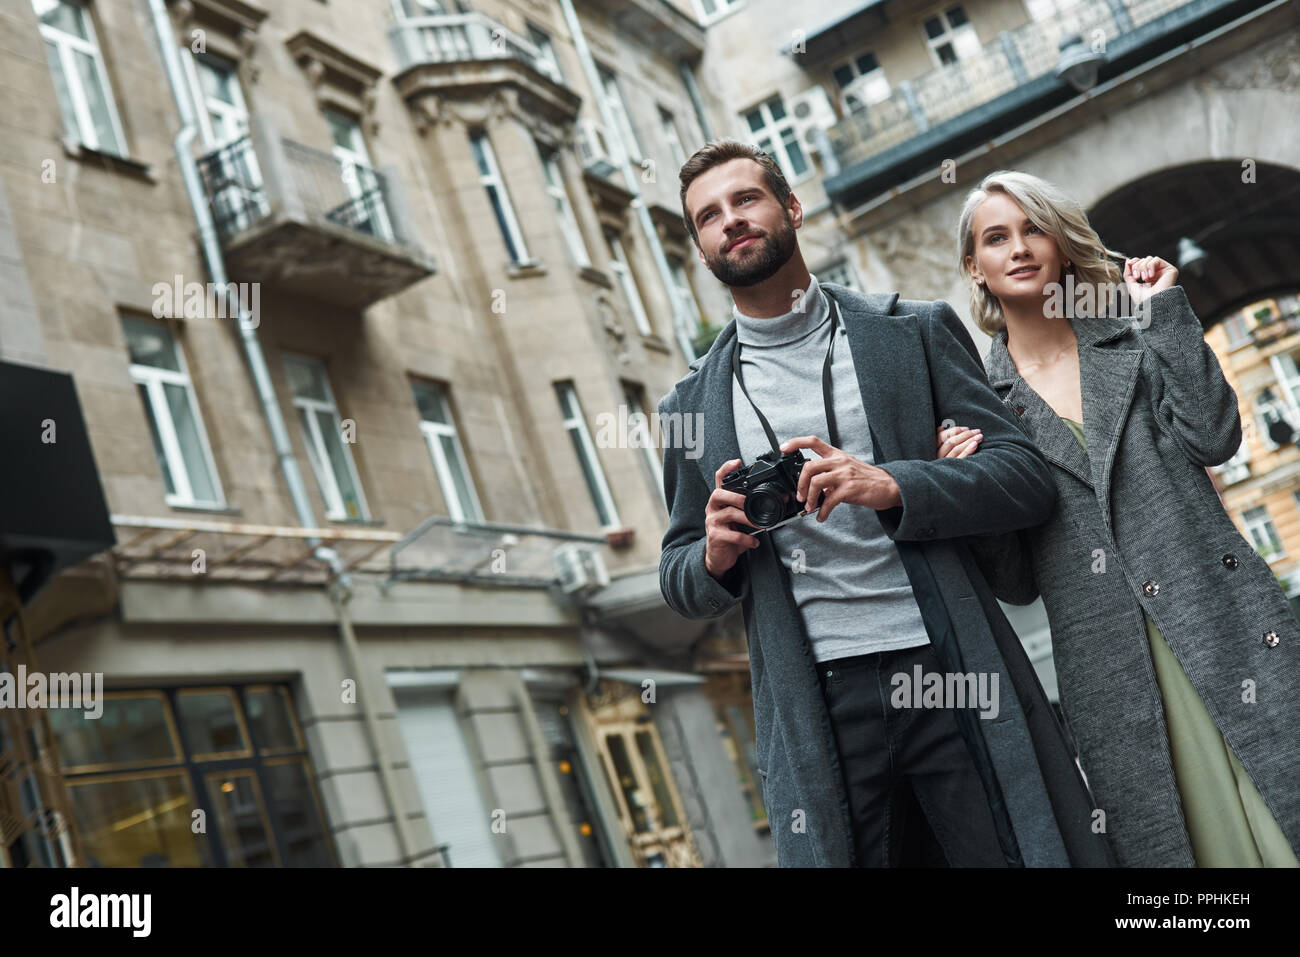 Romantic date outdoors. Young couple walking on the city street taking photos on camera smiling excited - Stock Image